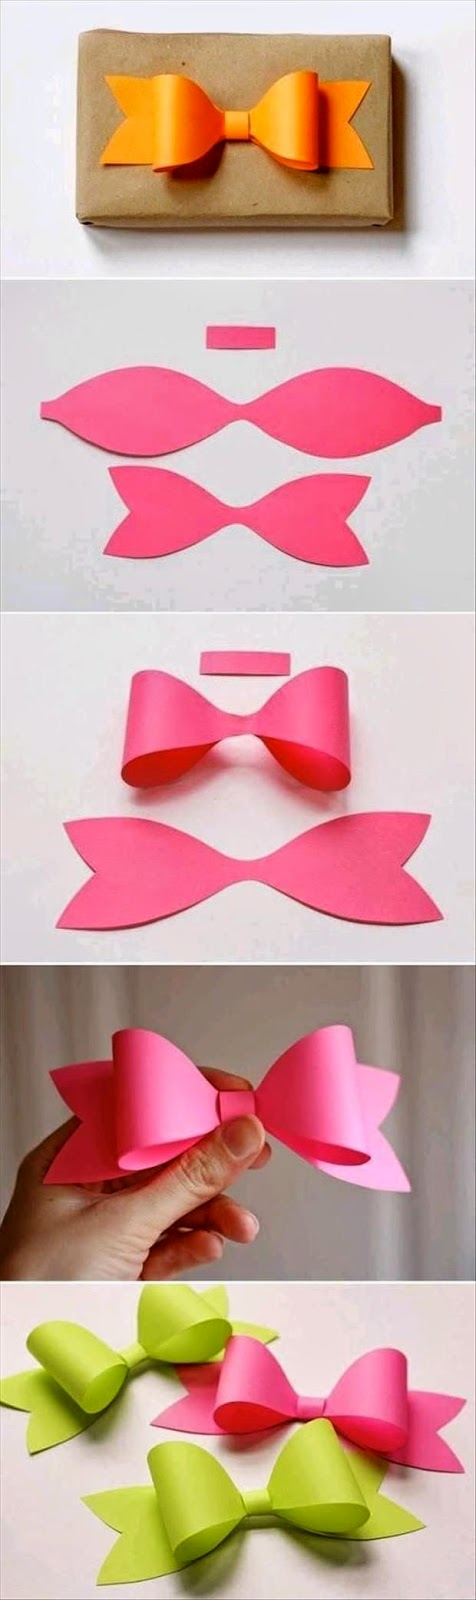 Gift Tutorial Step By Step #1